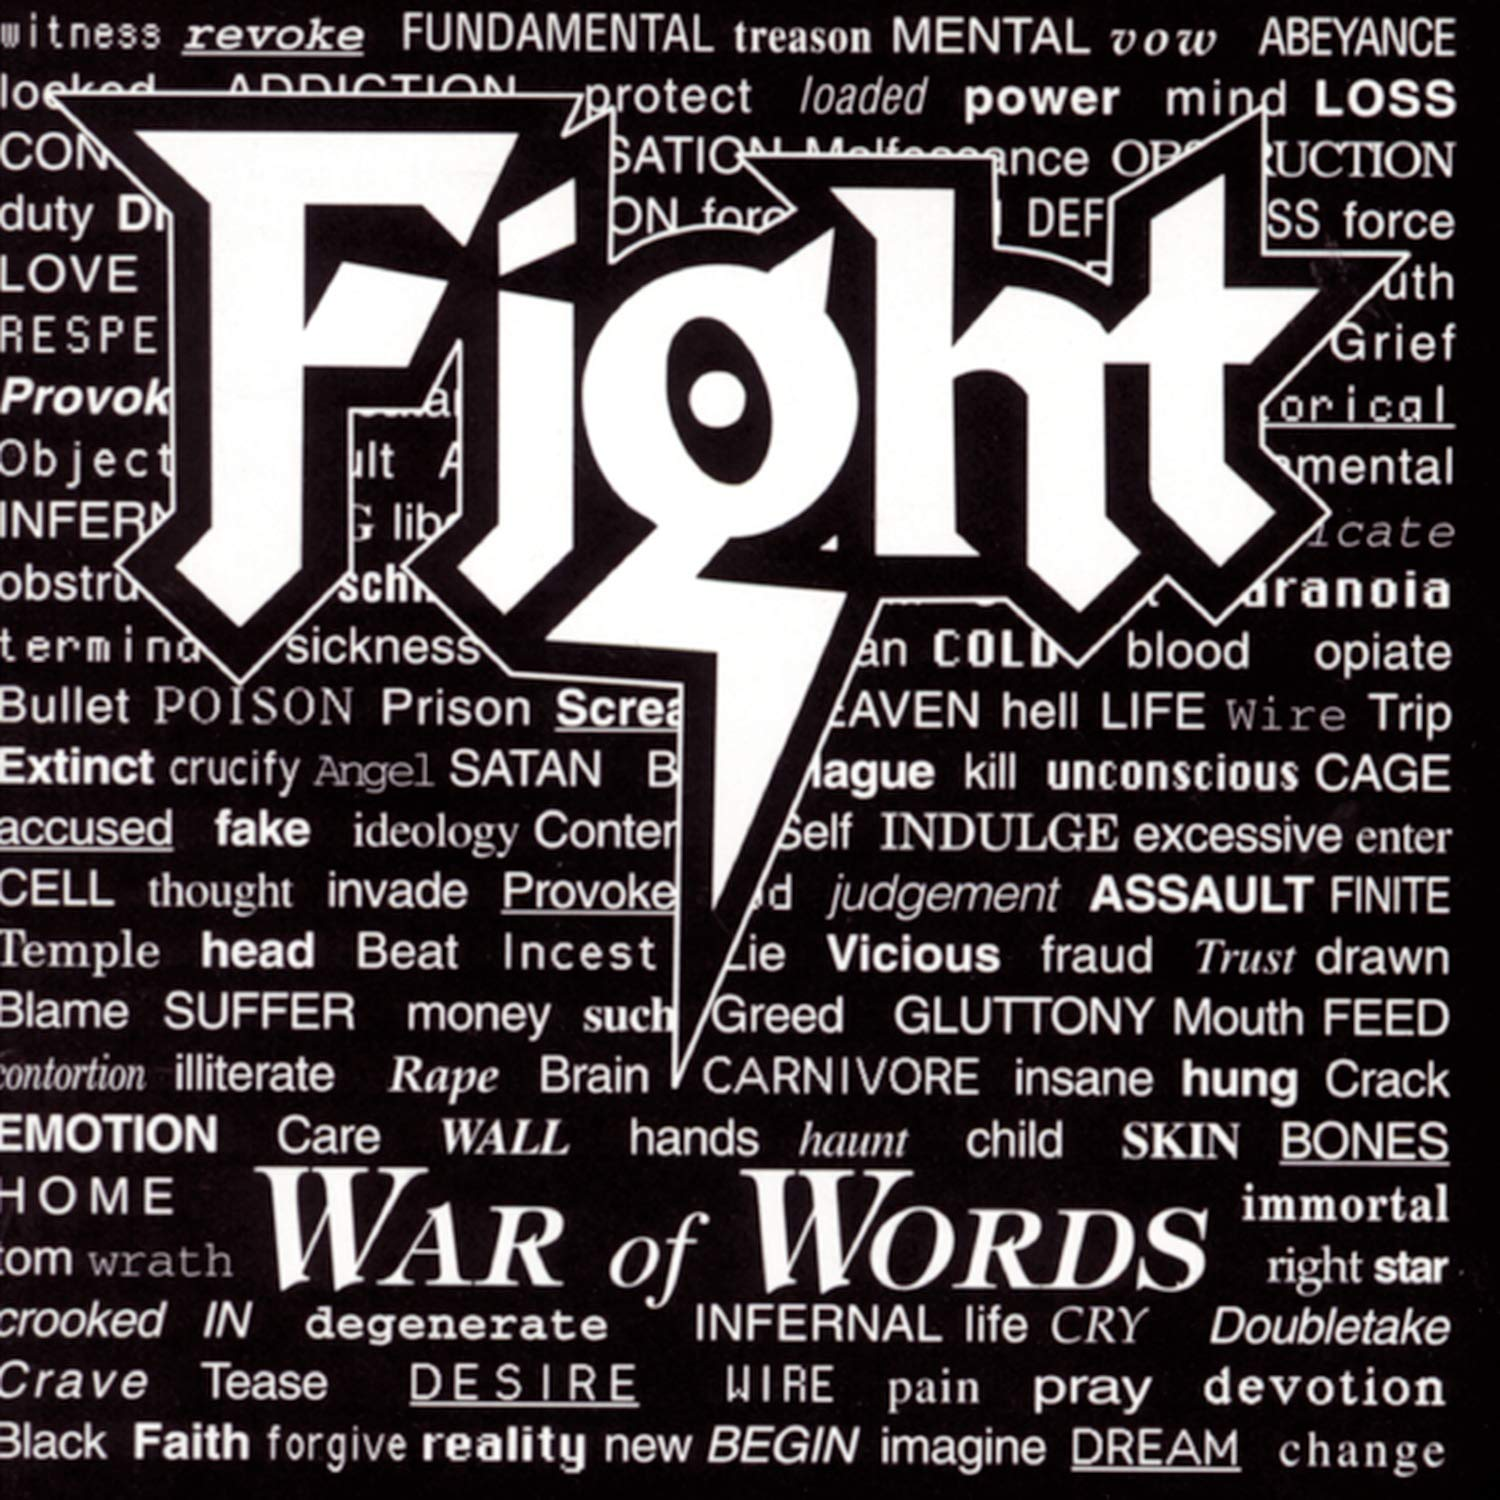 Fight_War of Words